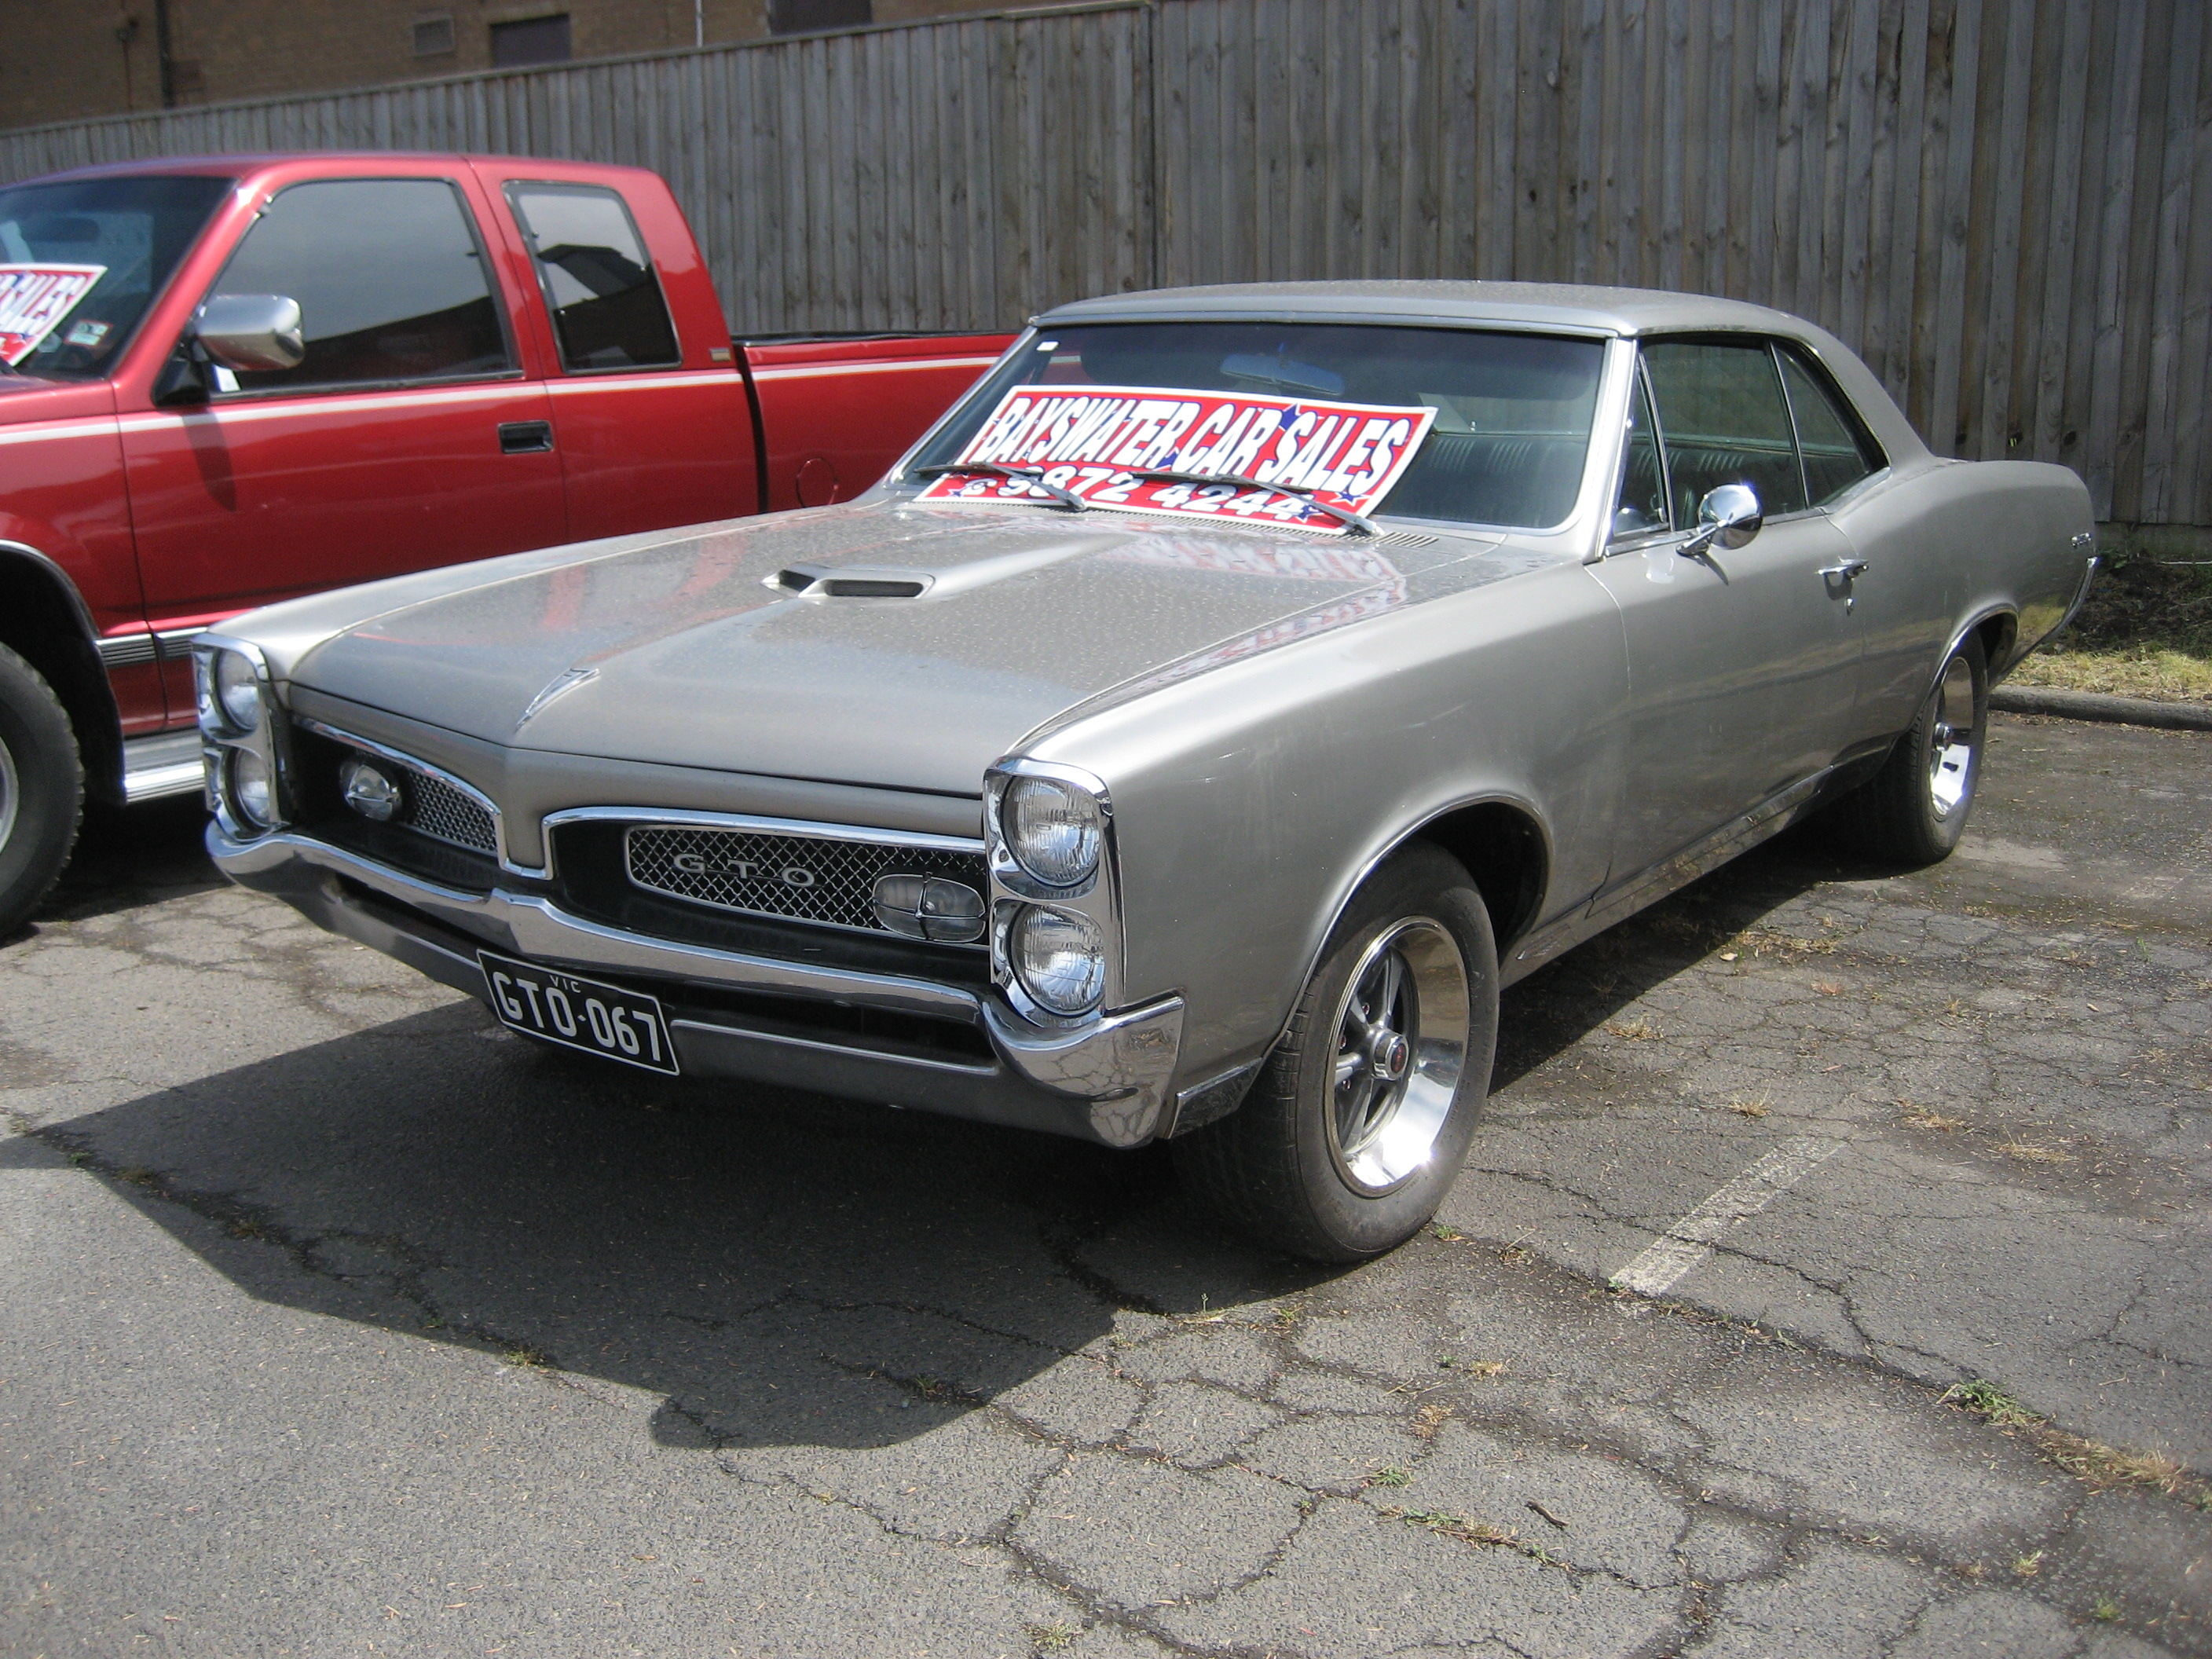 Description 1967 Pontiac GTO Hardtopjpg 2816x2112